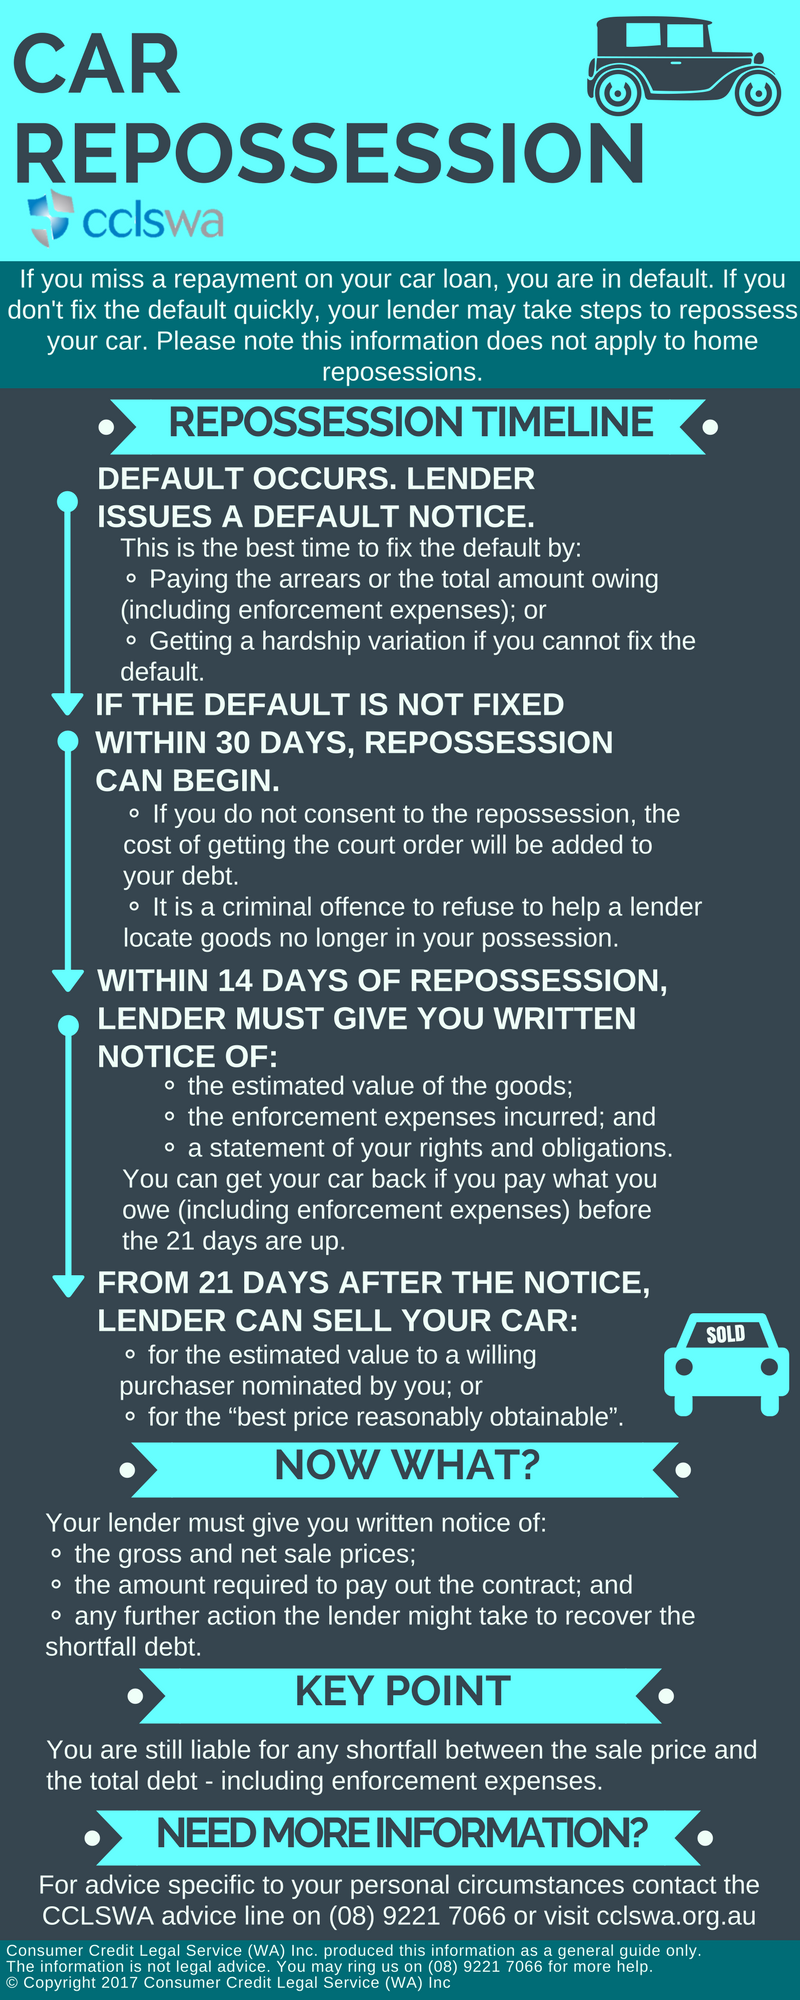 Car Repossession Infographic